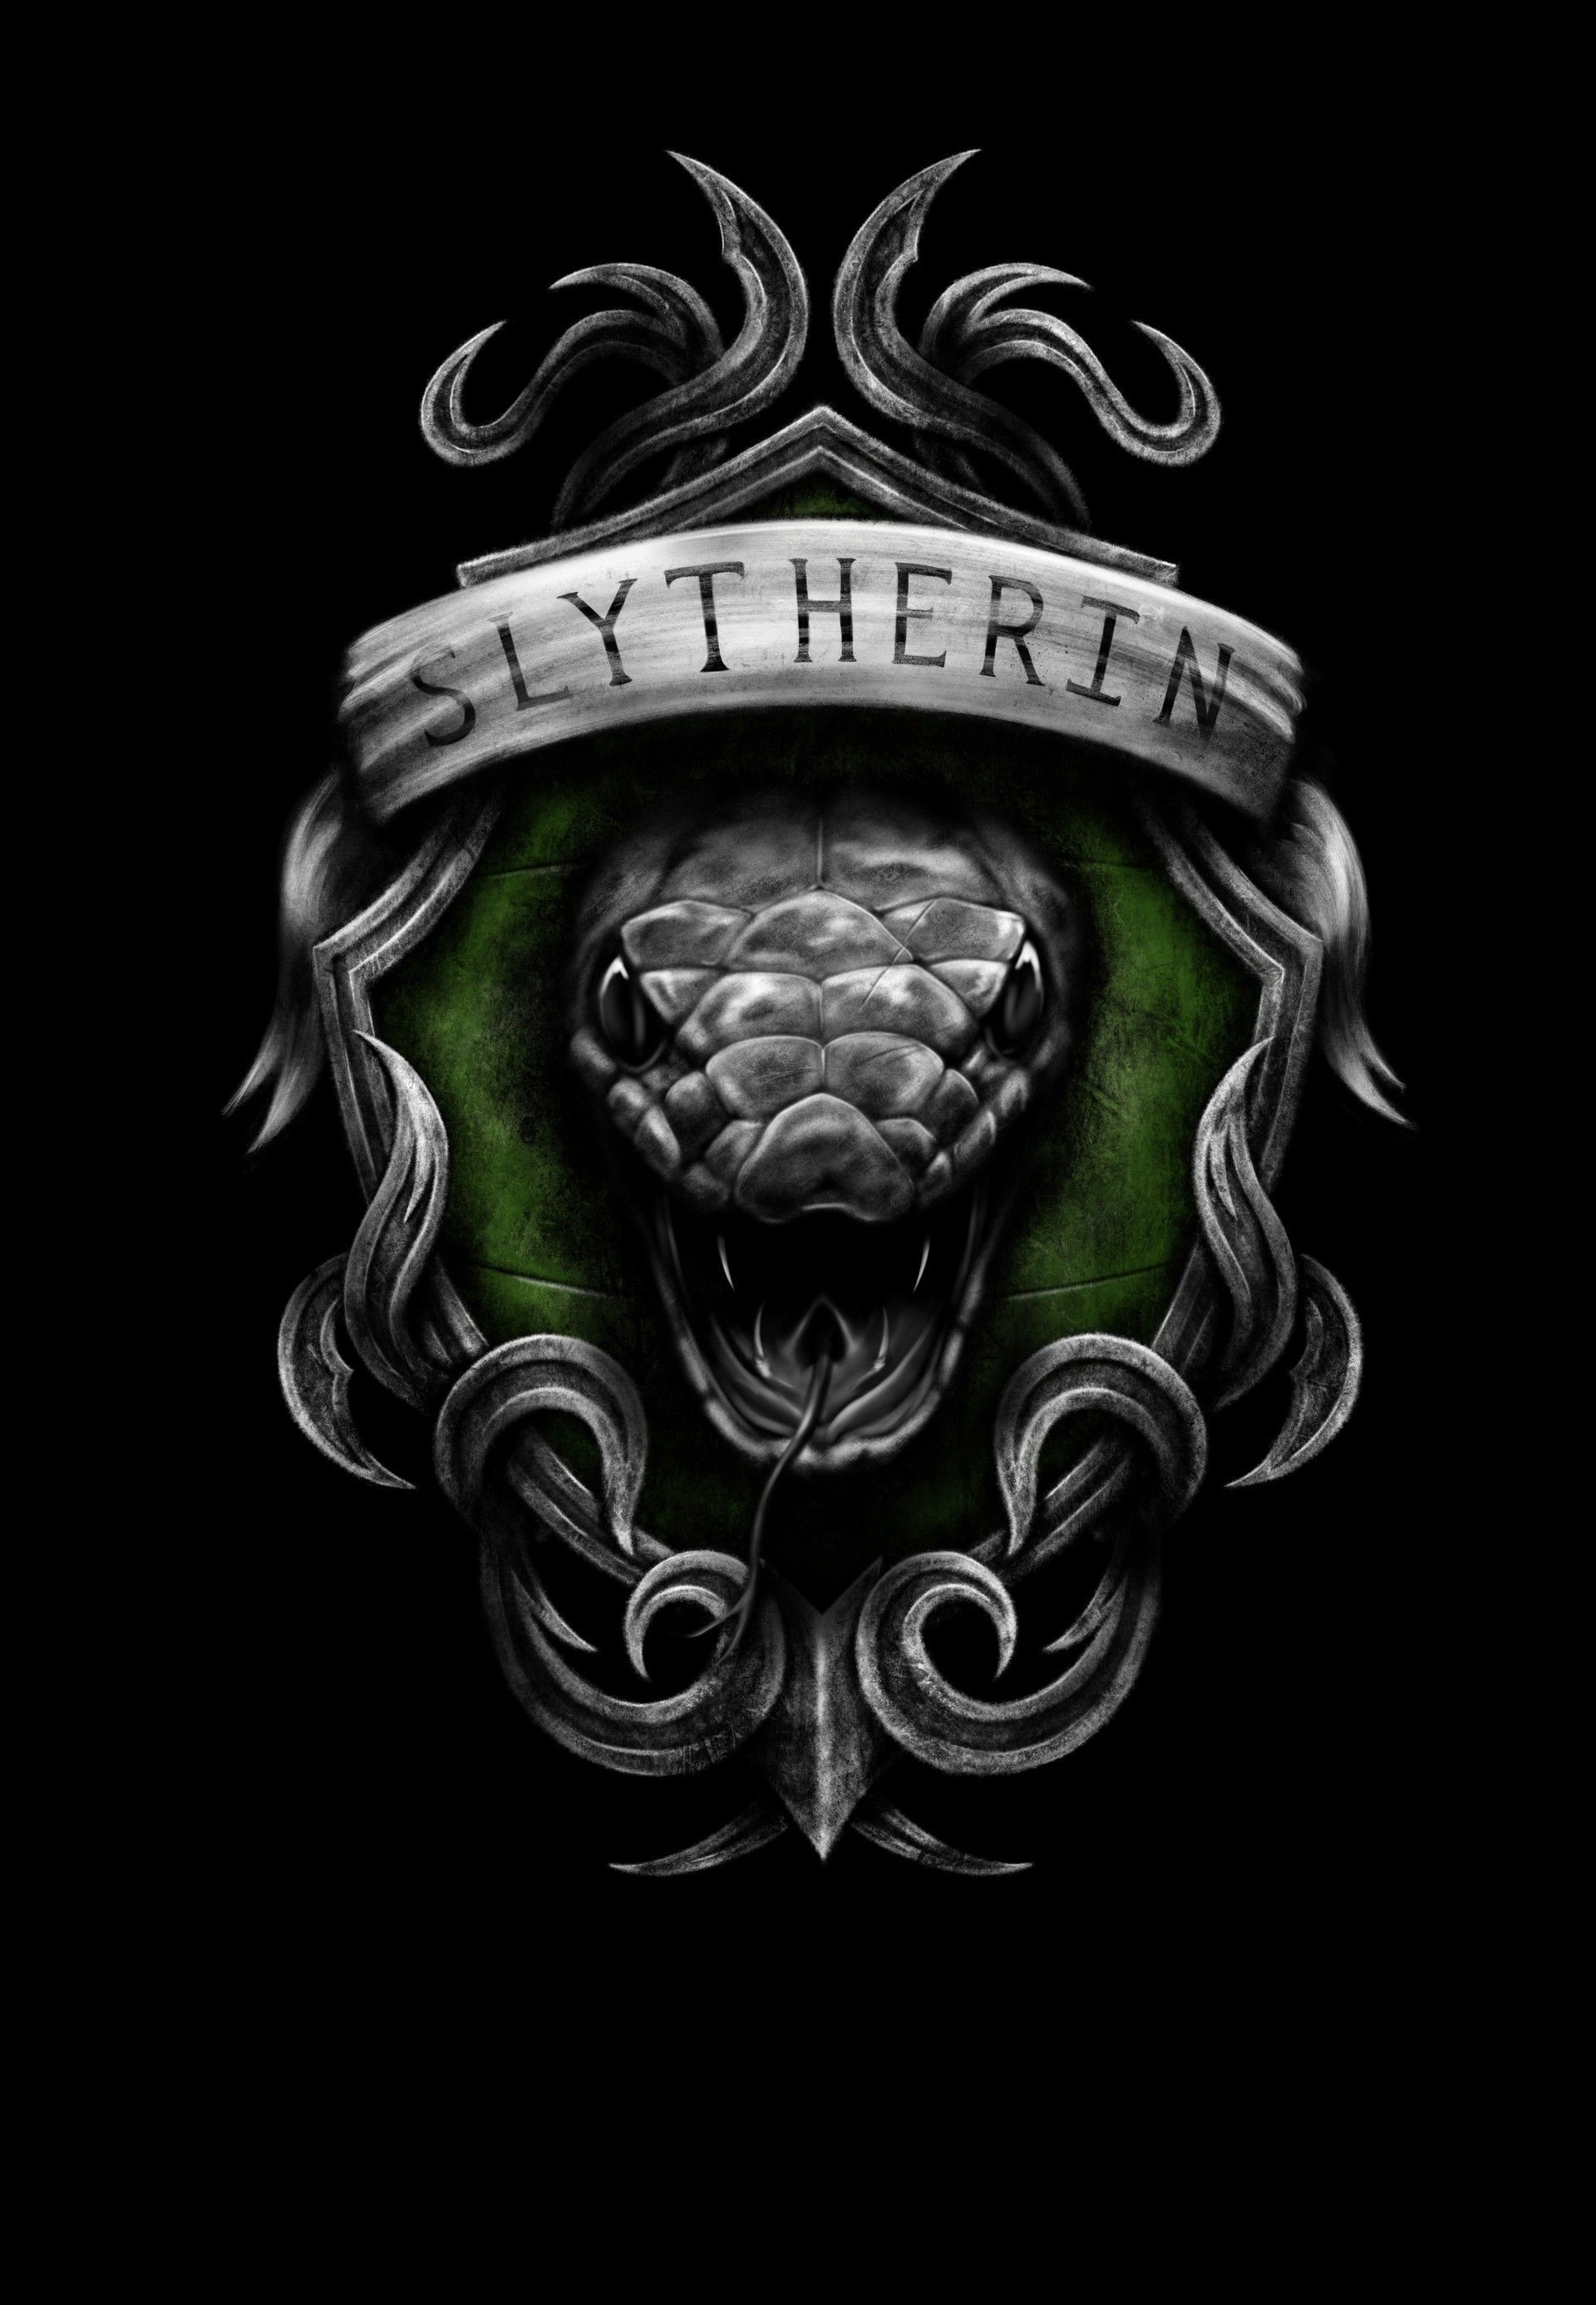 Slytherin Desktop Background Posted By Christopher Tremblay